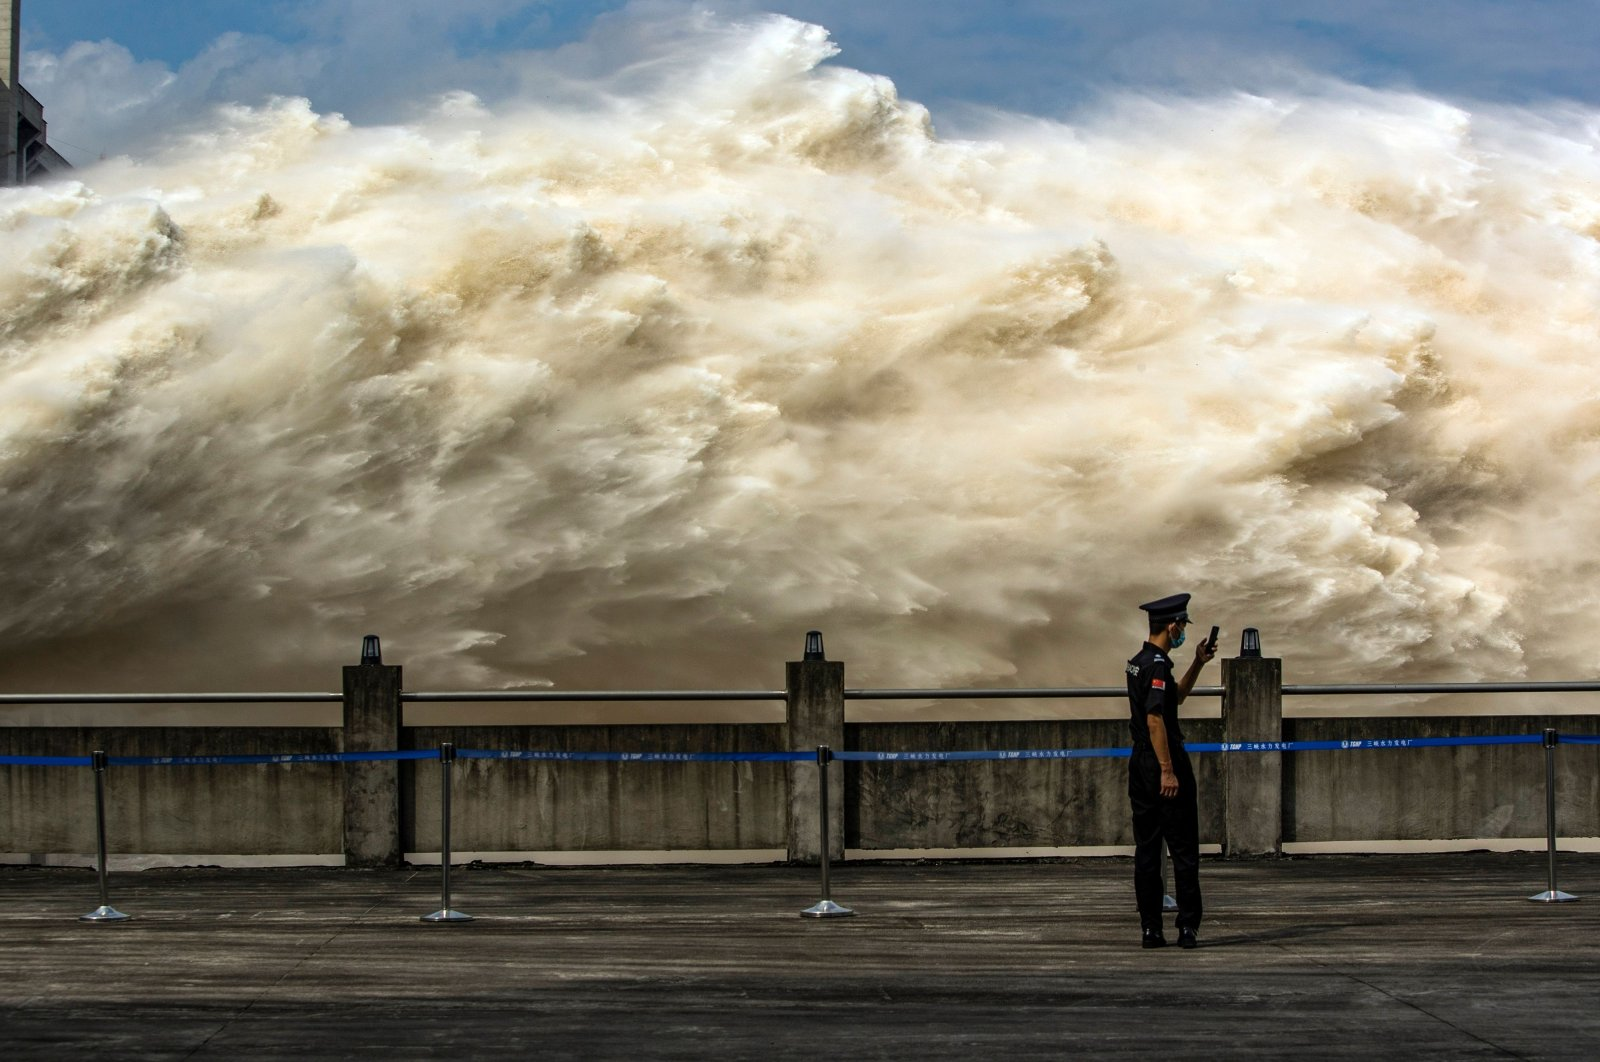 A security guard looking at his smartphone while water is released from the Three Gorges Dam, a gigantic hydropower project on the Yangtze river, to relieve flood pressure in Yichang, central China's Hubei province, July 19, 2020. (AFP Photo)